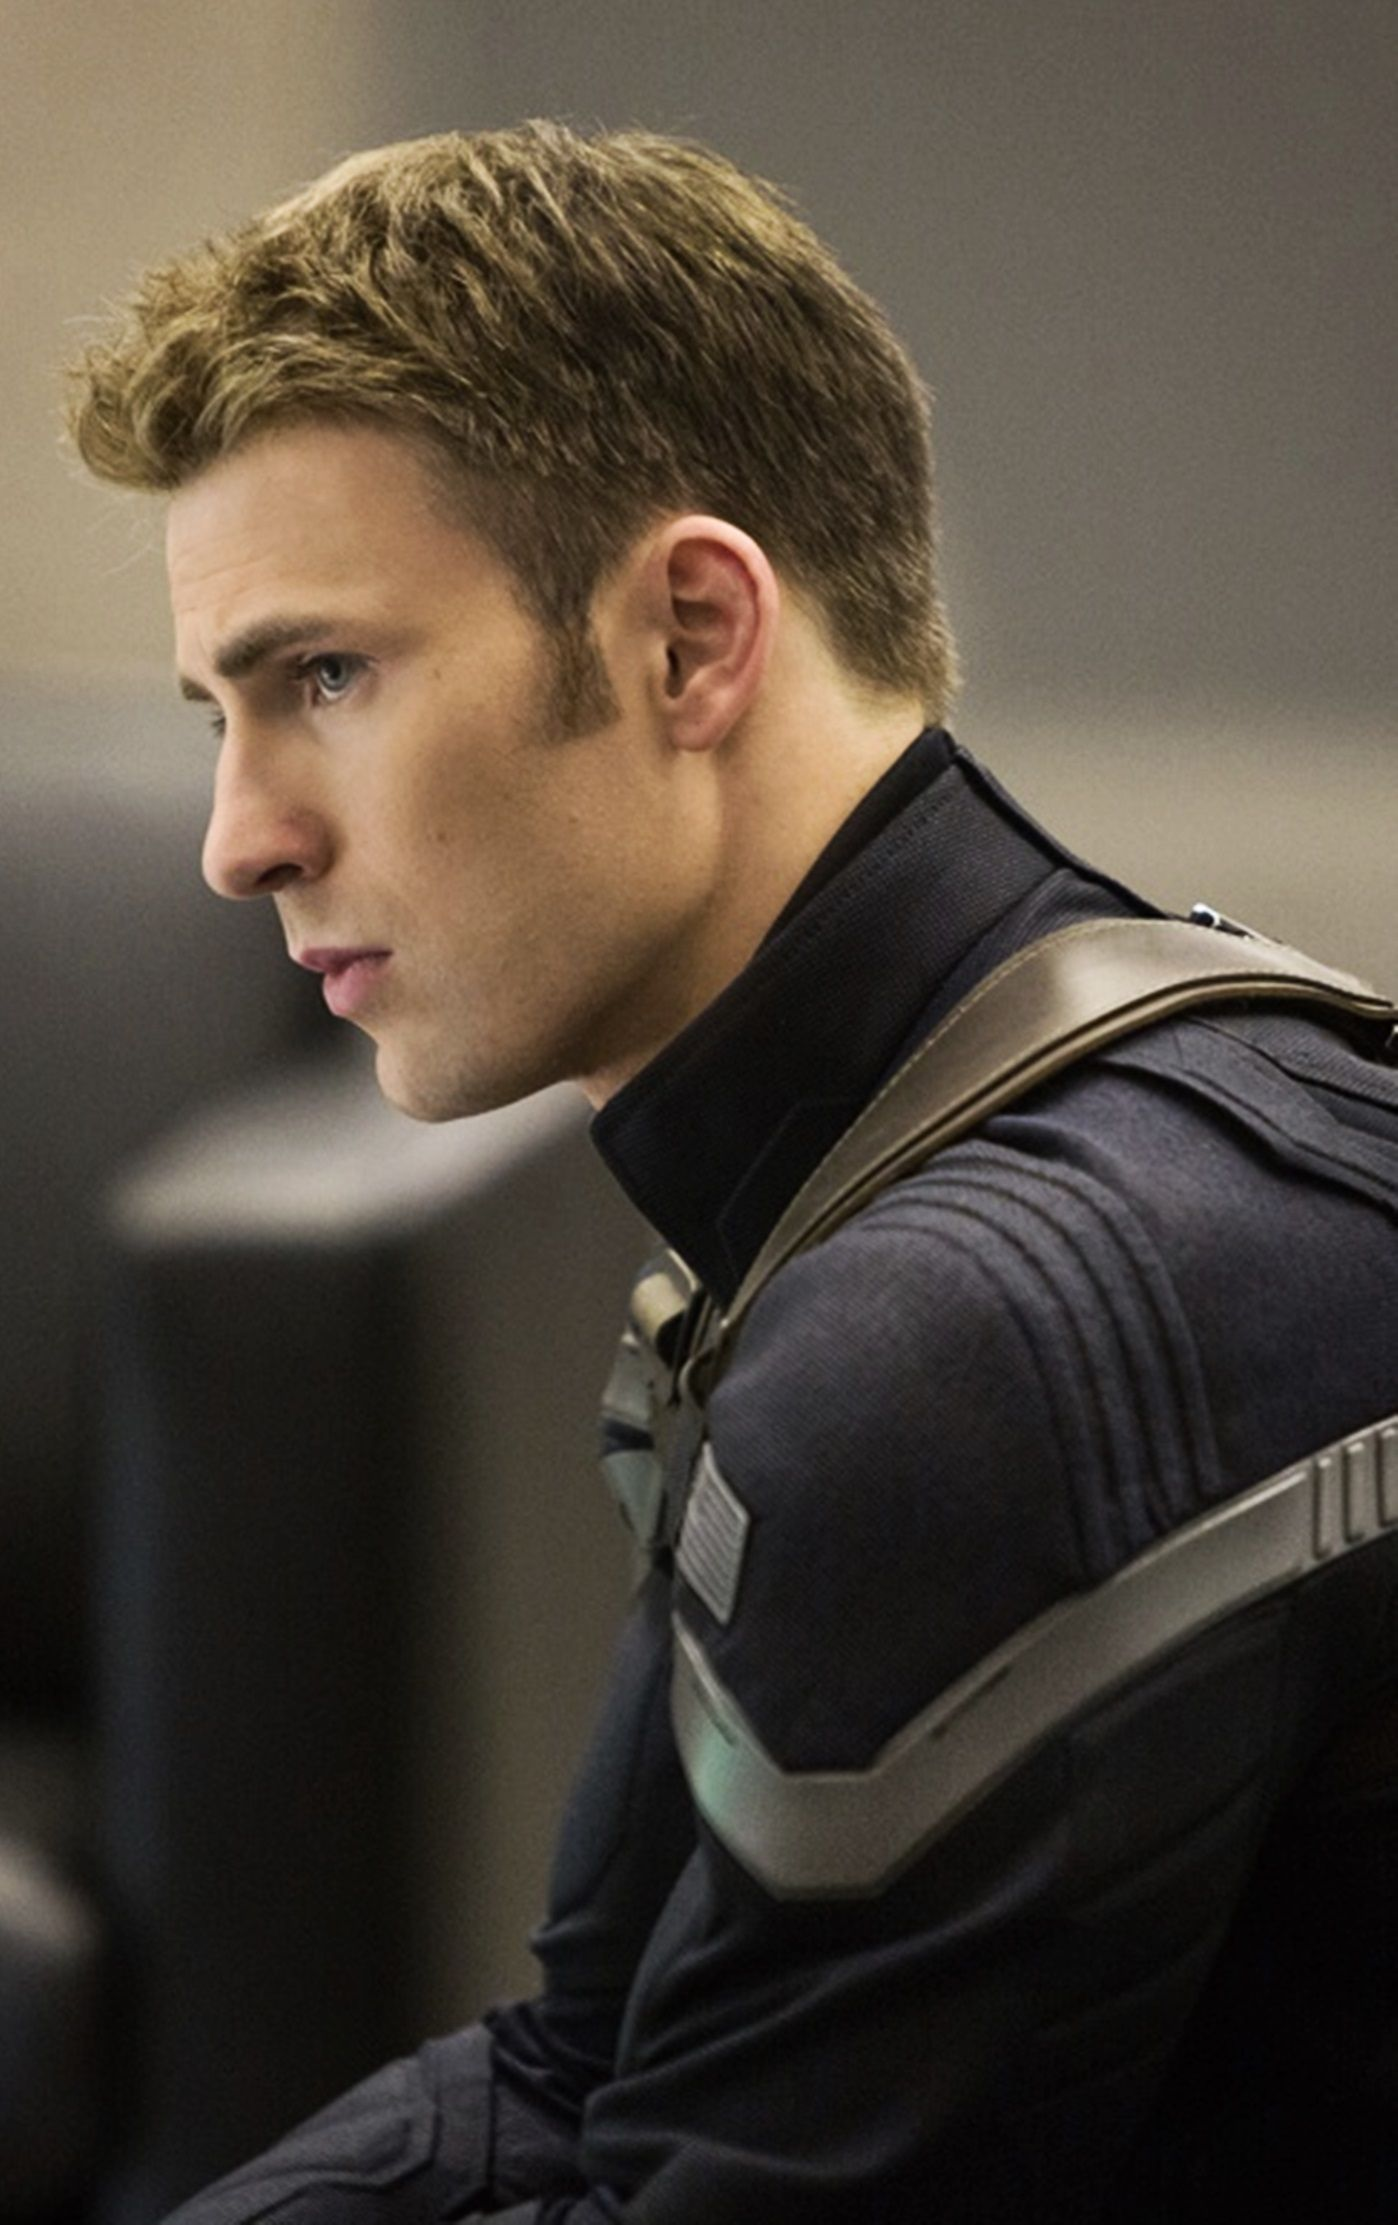 captain america 2′ sets 'avengers: age of ultron' in motion, bob